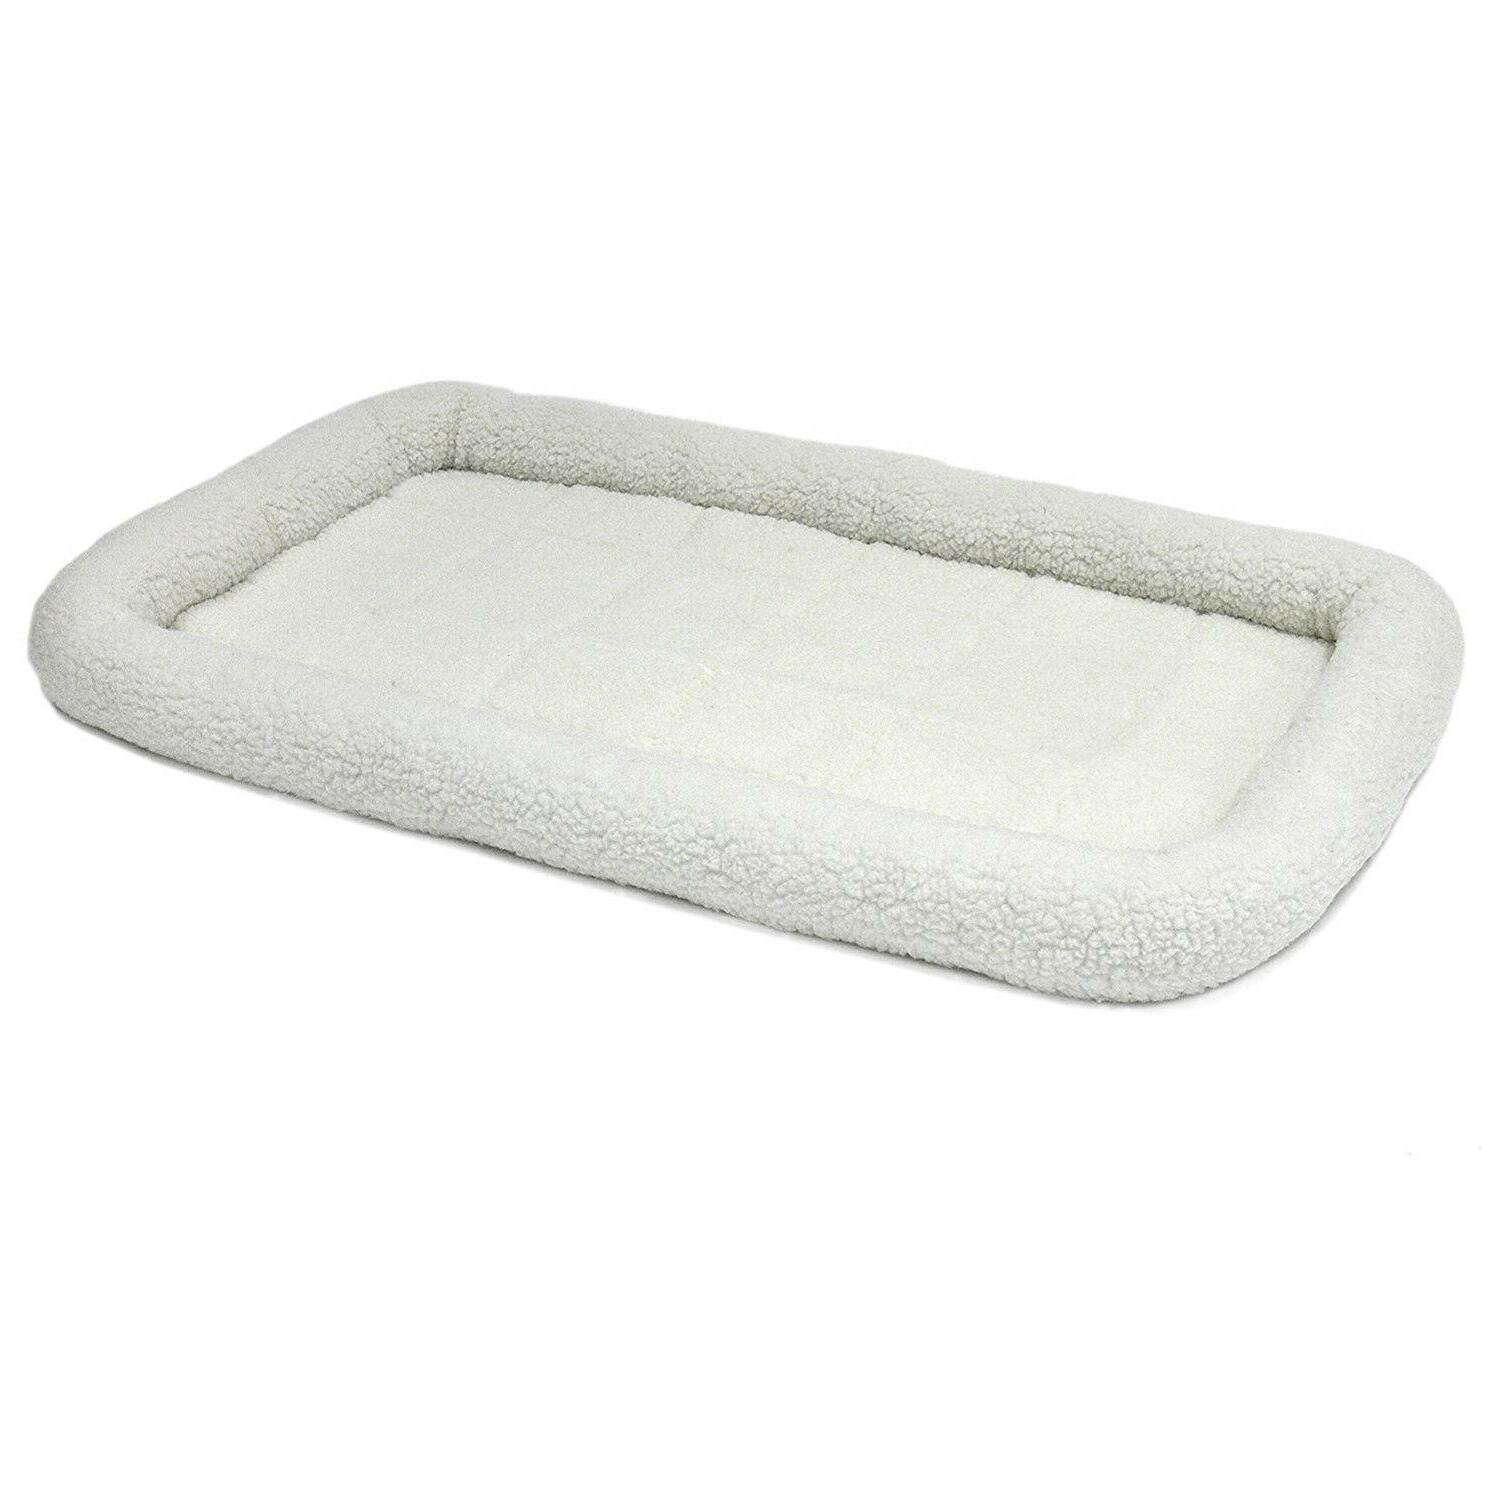 Pet Bed For Dogs And Cats Polyester-Filled Bolster Inch